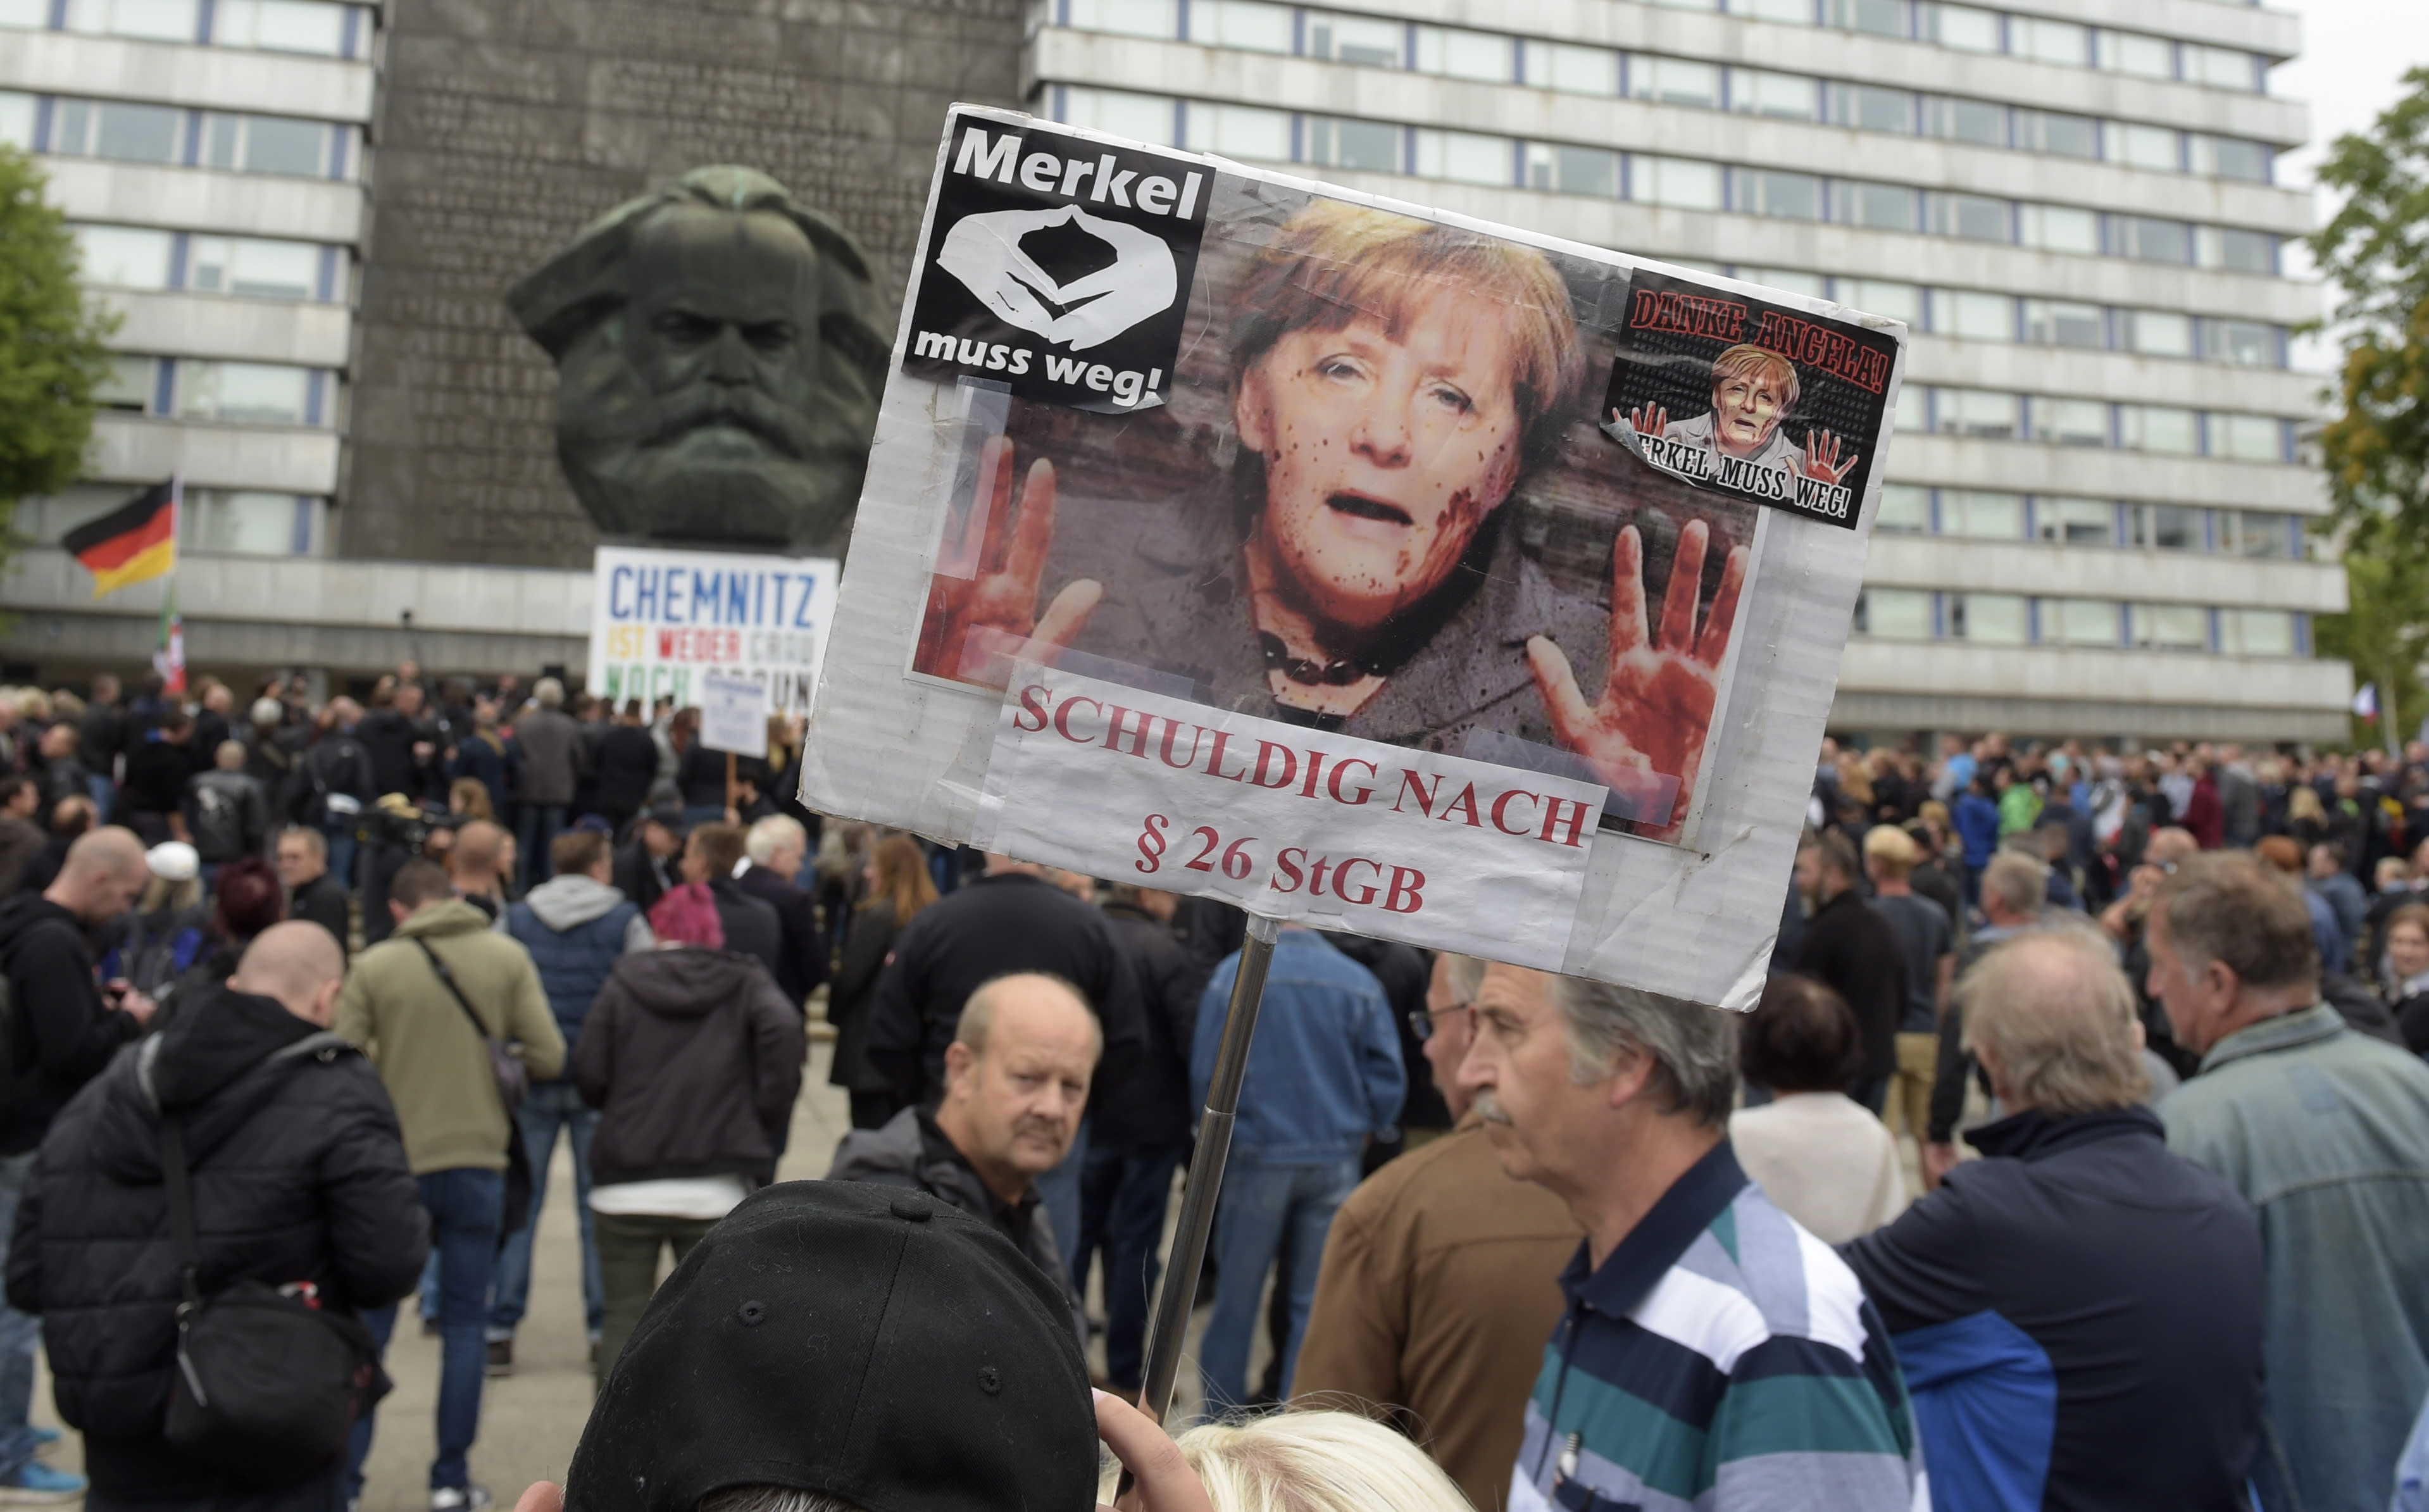 """A protestor holds a poster with a photo of Angela Merkel reading 'Merkel must go"""" and referring she is guilty of incitement in Chemnitz, eastern Germany, Saturday, Sept. 1, 2018, after several nationalist groups called for marches protesting the killing of a German man last week, allegedly by migrants from Syria and Iraq. (AP Photo/Jens Meyer)"""